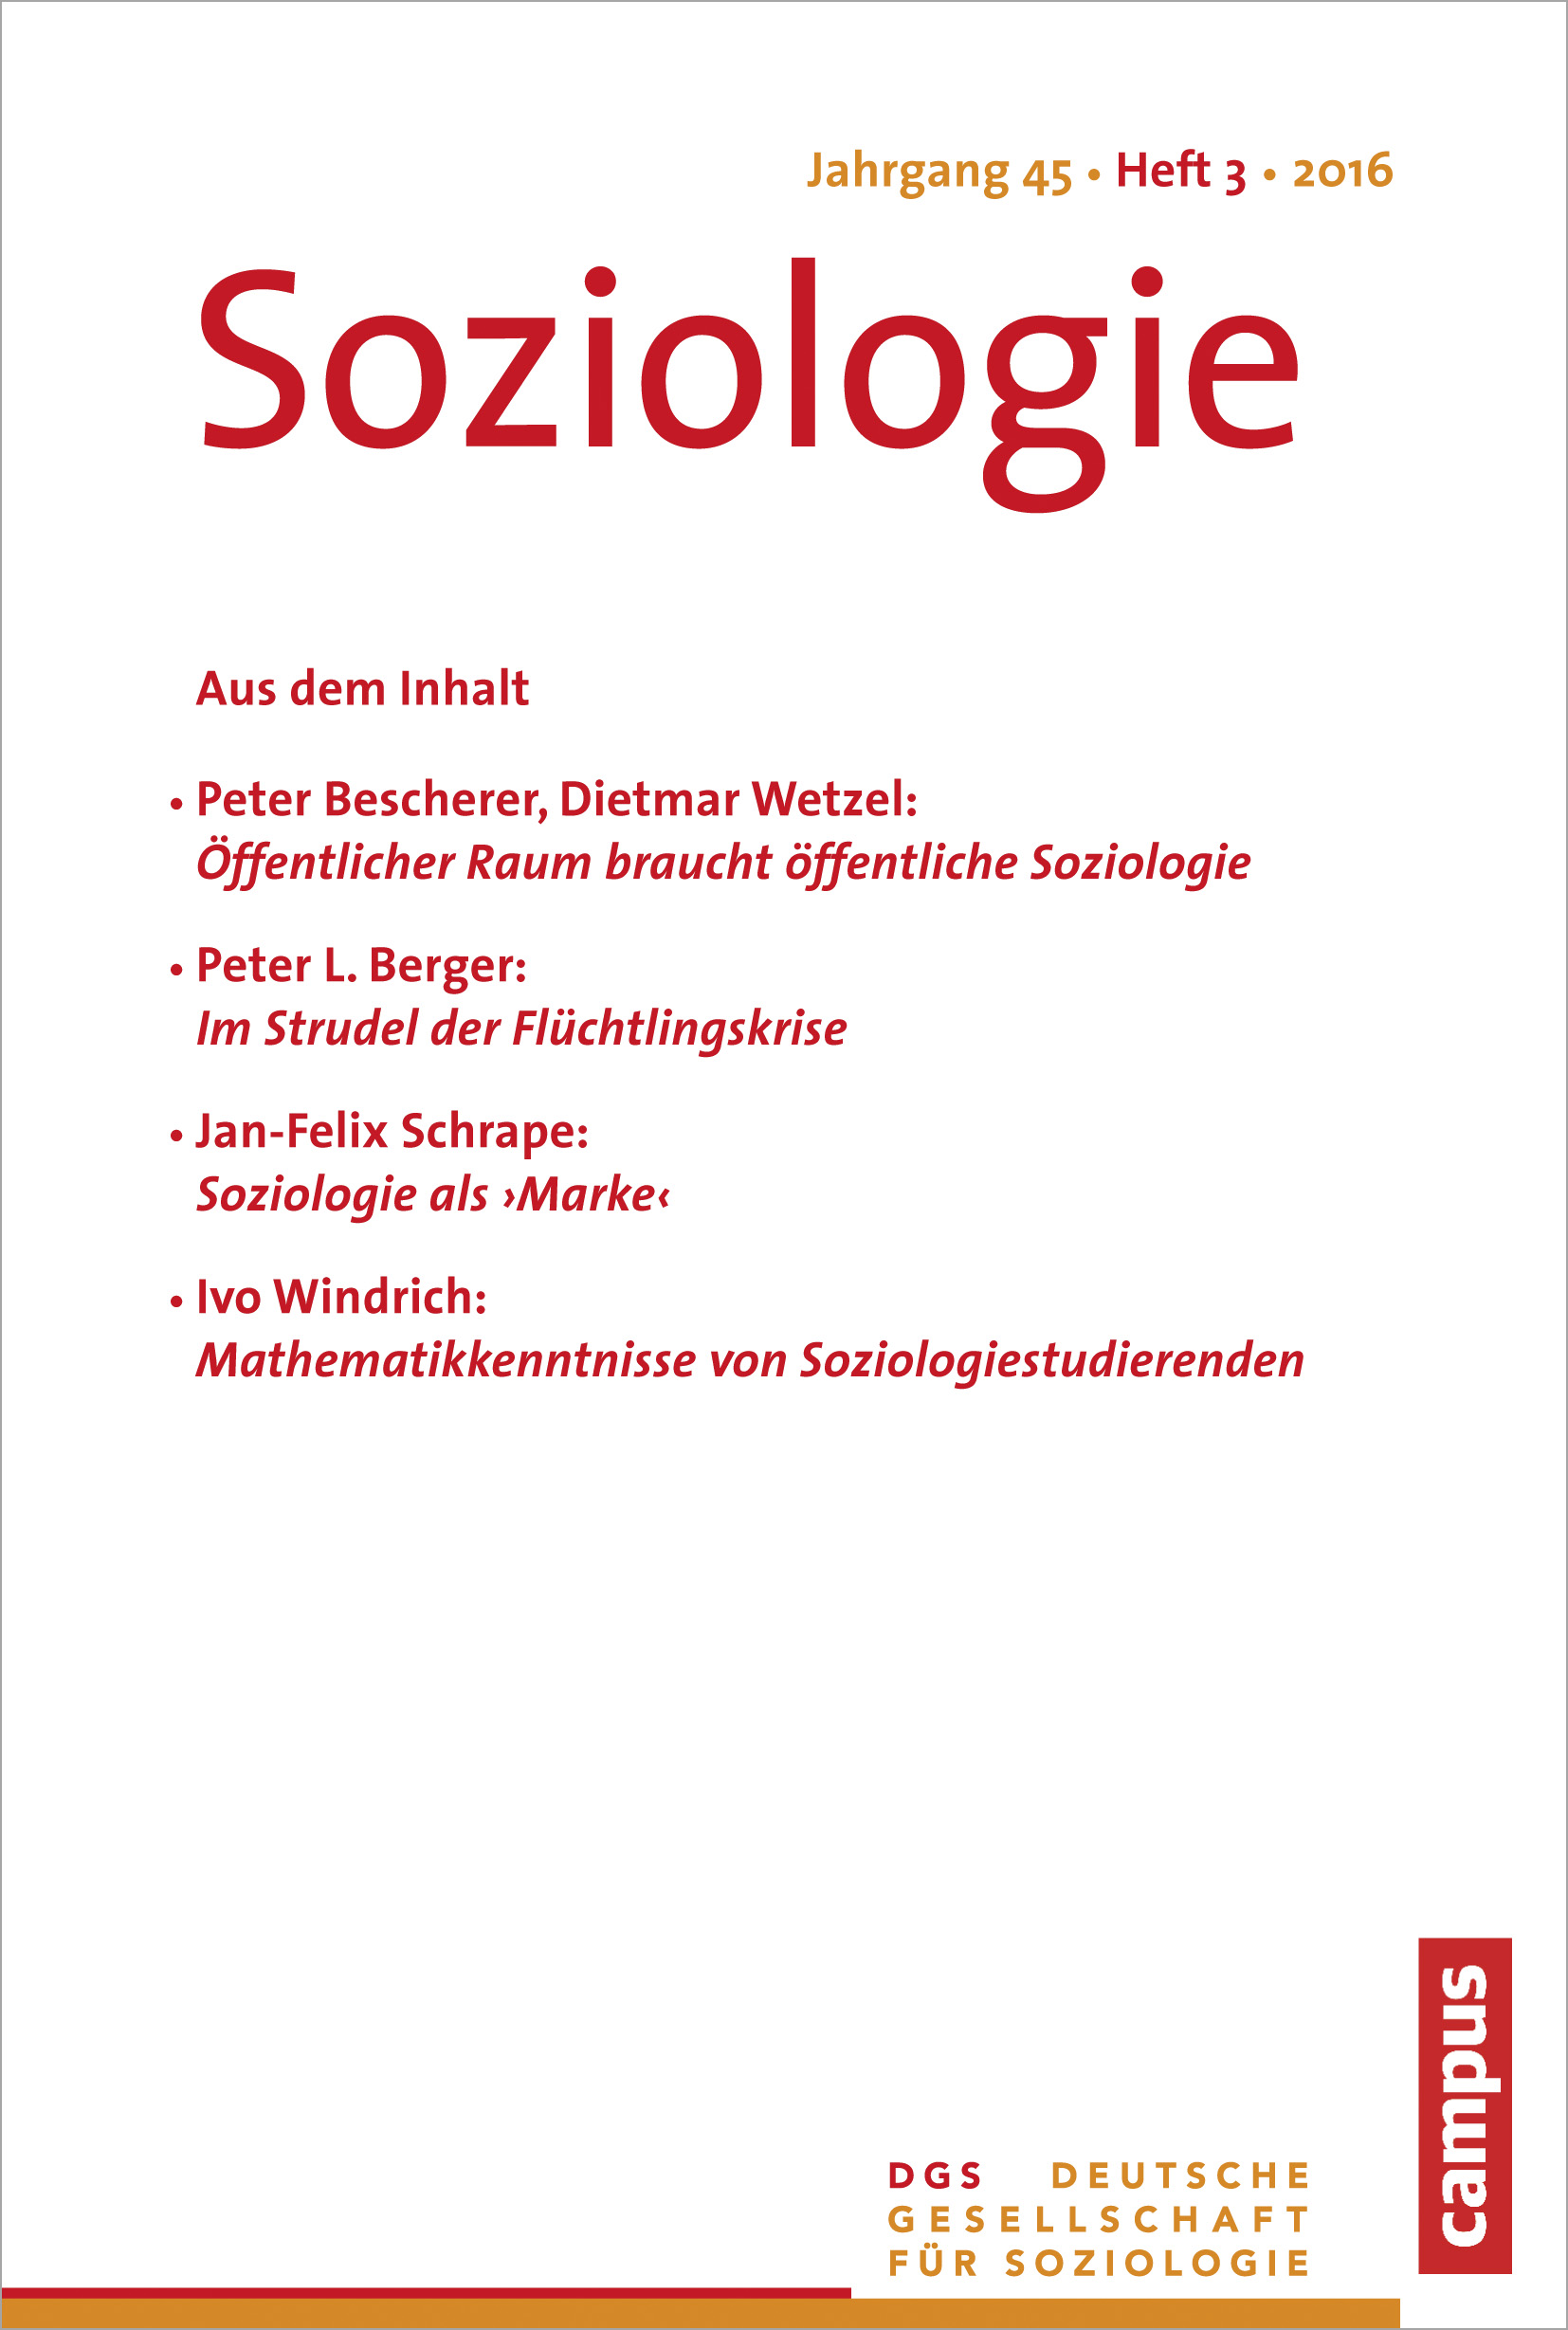 Soziologie_3-2016_Cover-new.indd